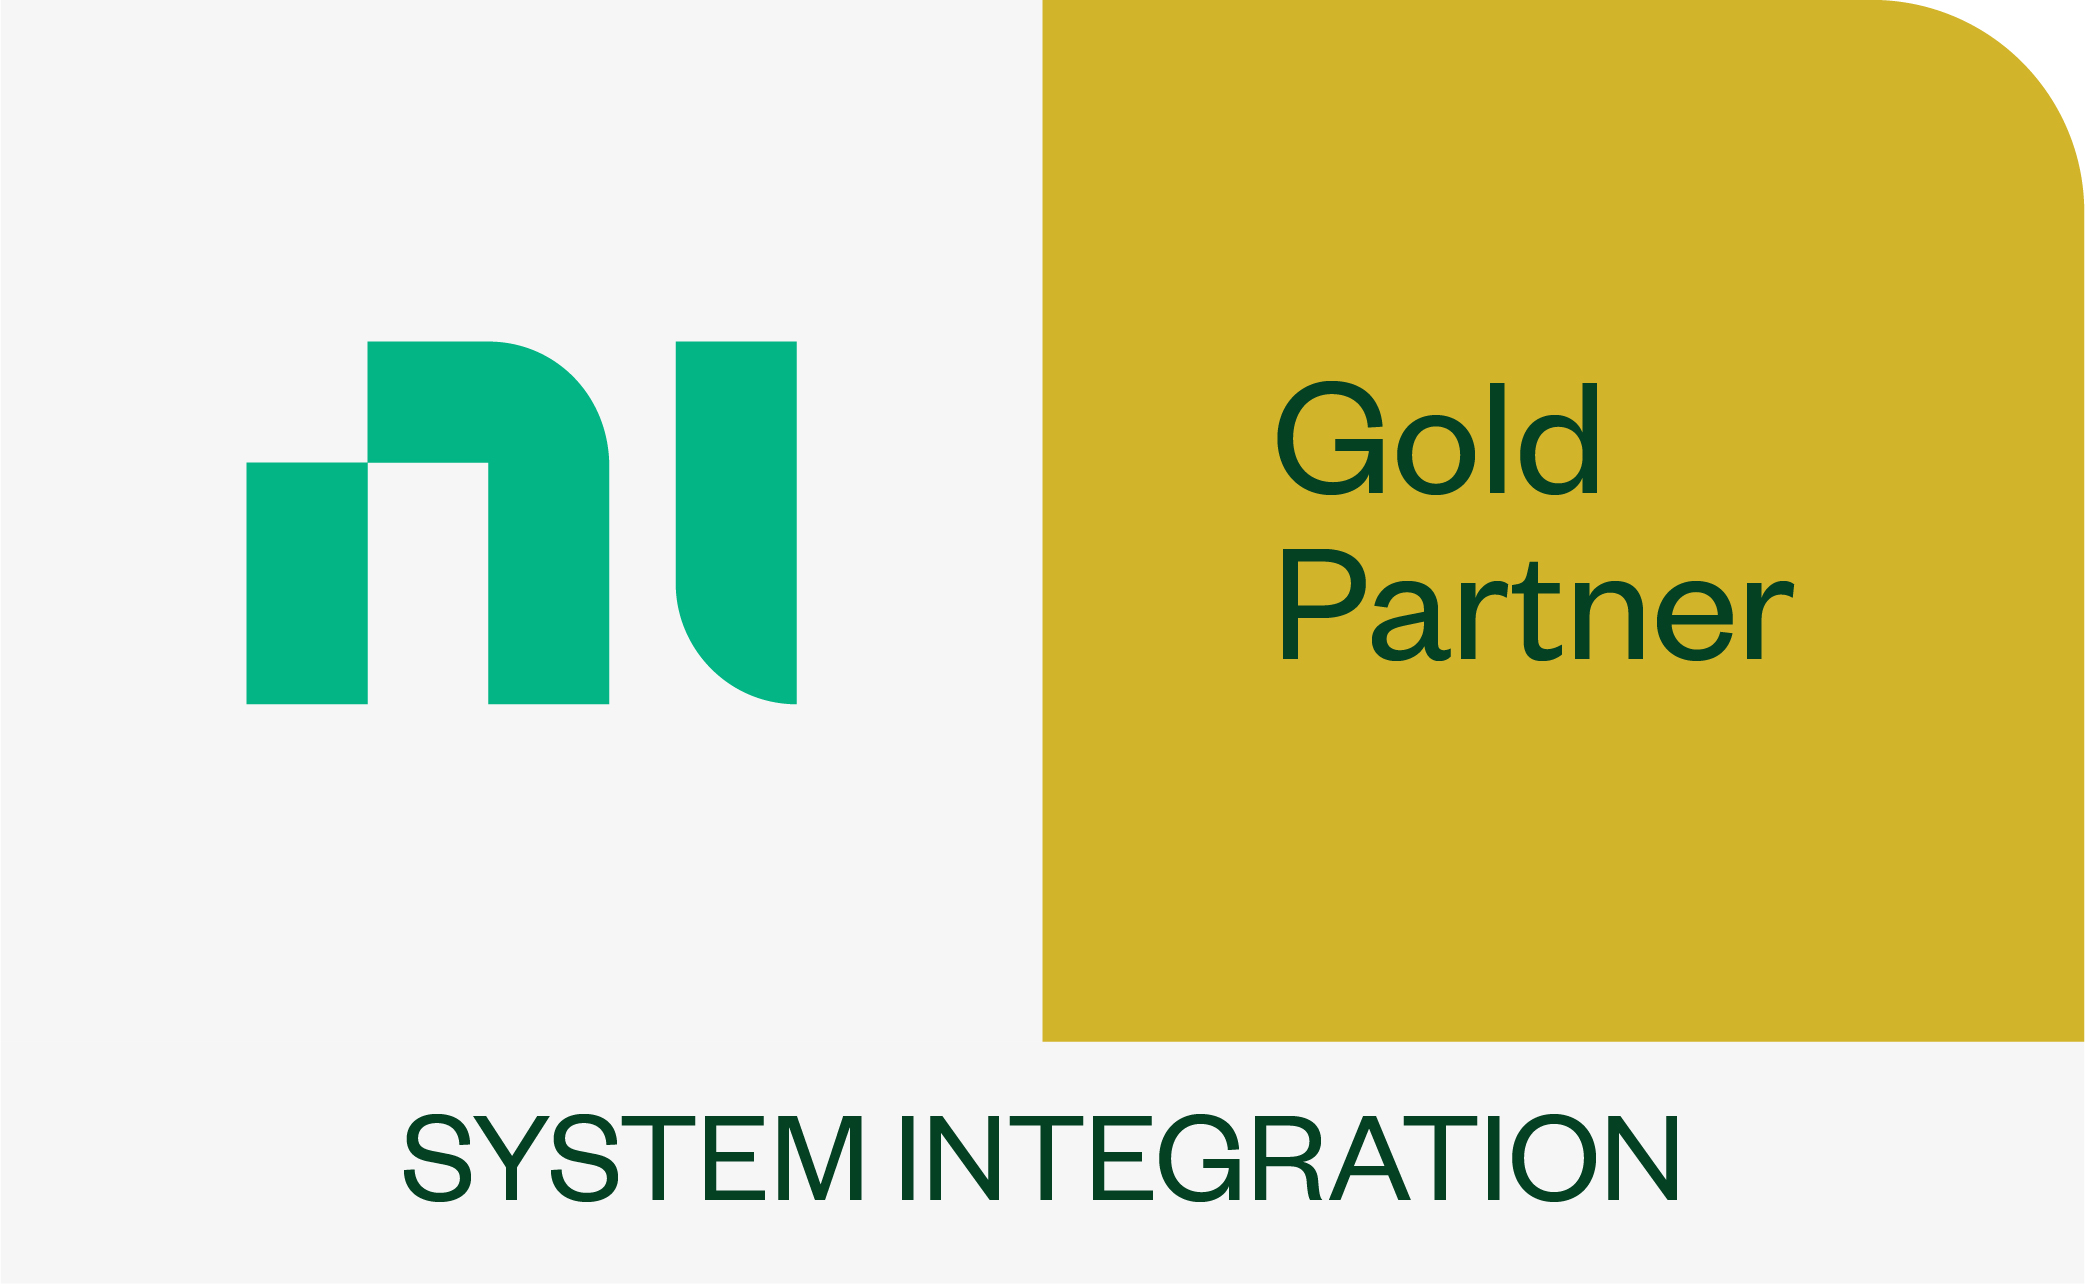 NI_Partner_Program_RGB_System%20Integration%20-%20Gold%20Partner_1.jpg